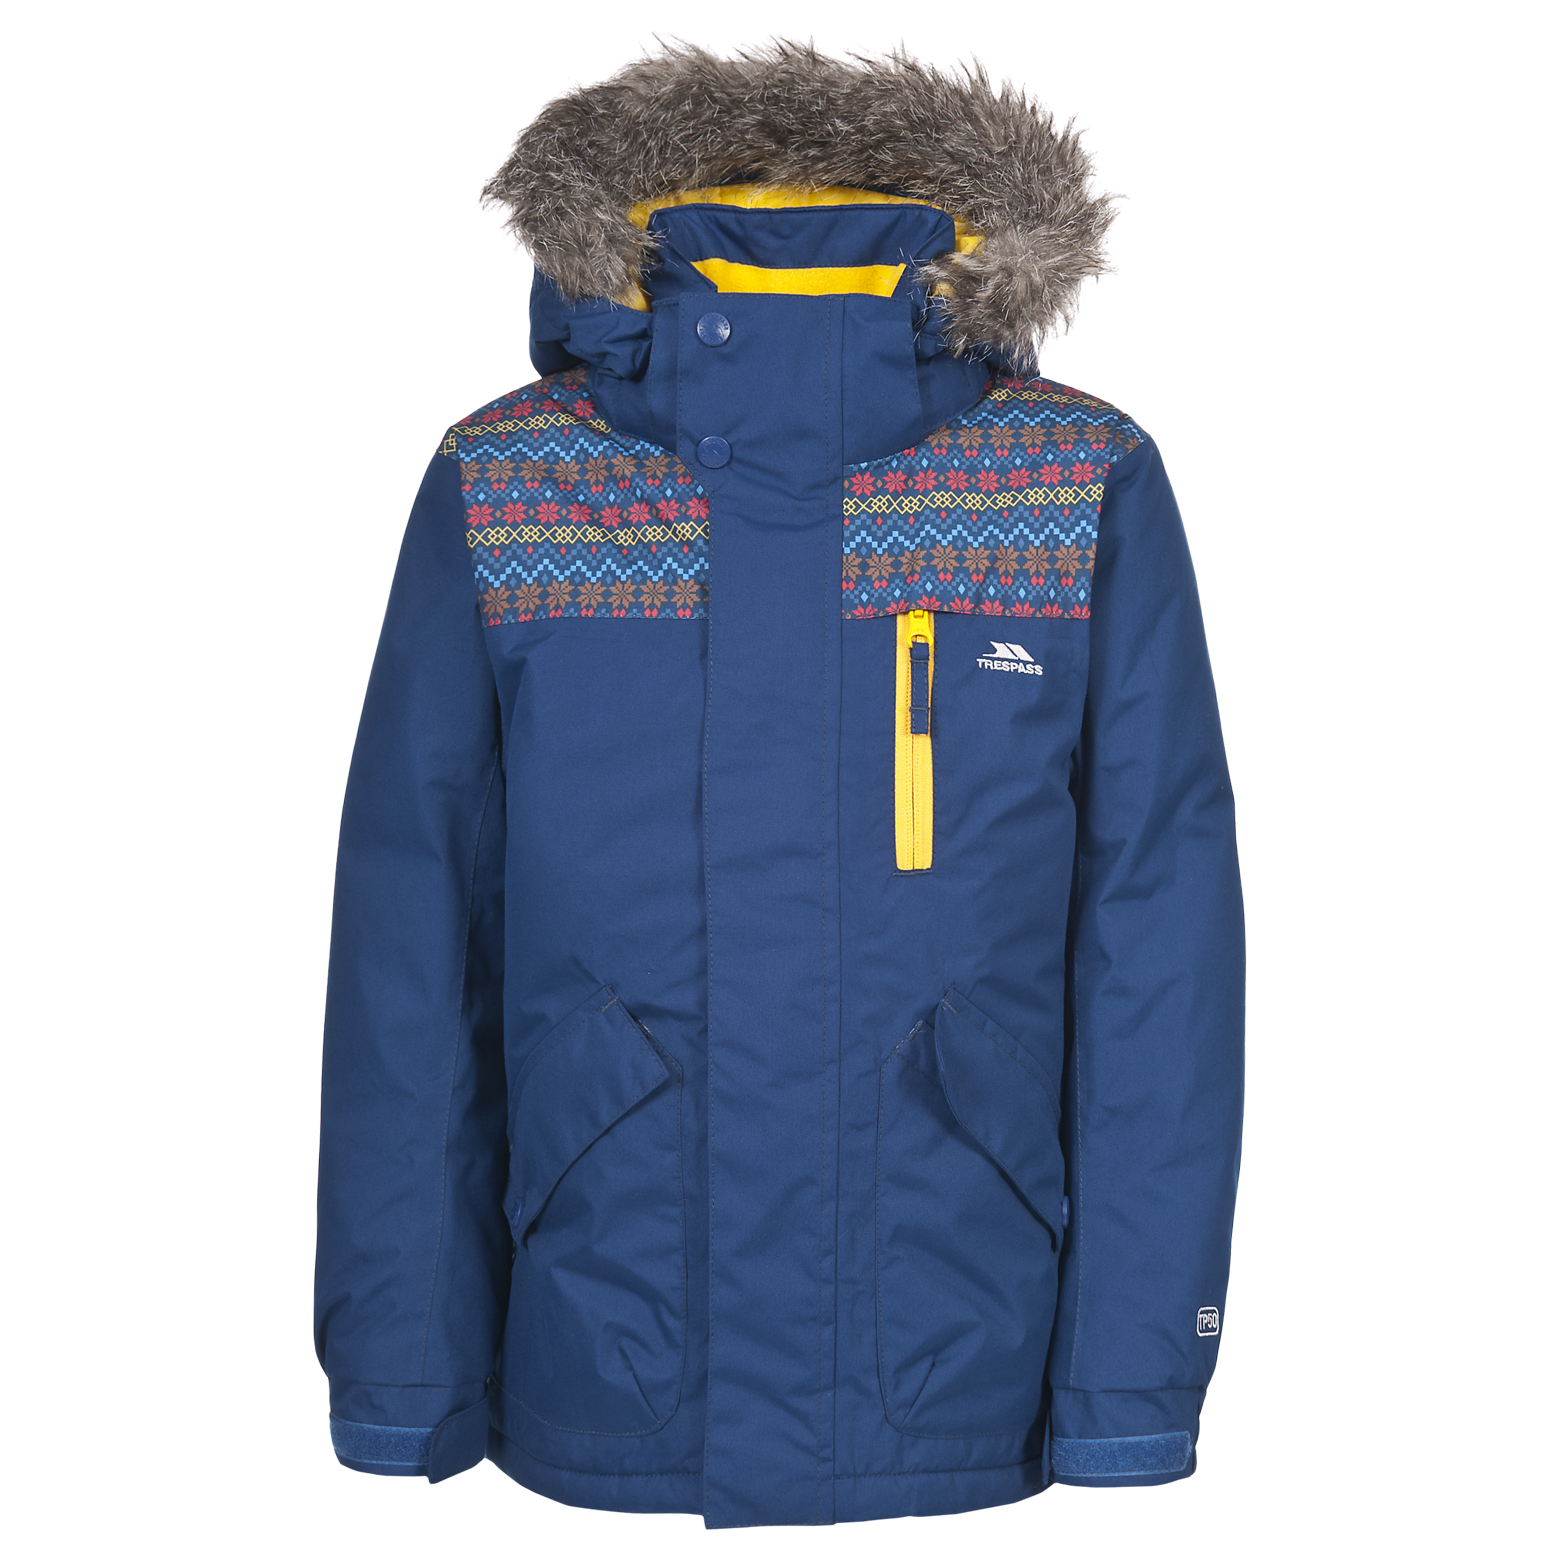 Shop for Ski Jackets at REI - FREE SHIPPING With $50 minimum purchase. Top quality, great selection and expert advice you can trust. % Satisfaction Guarantee.